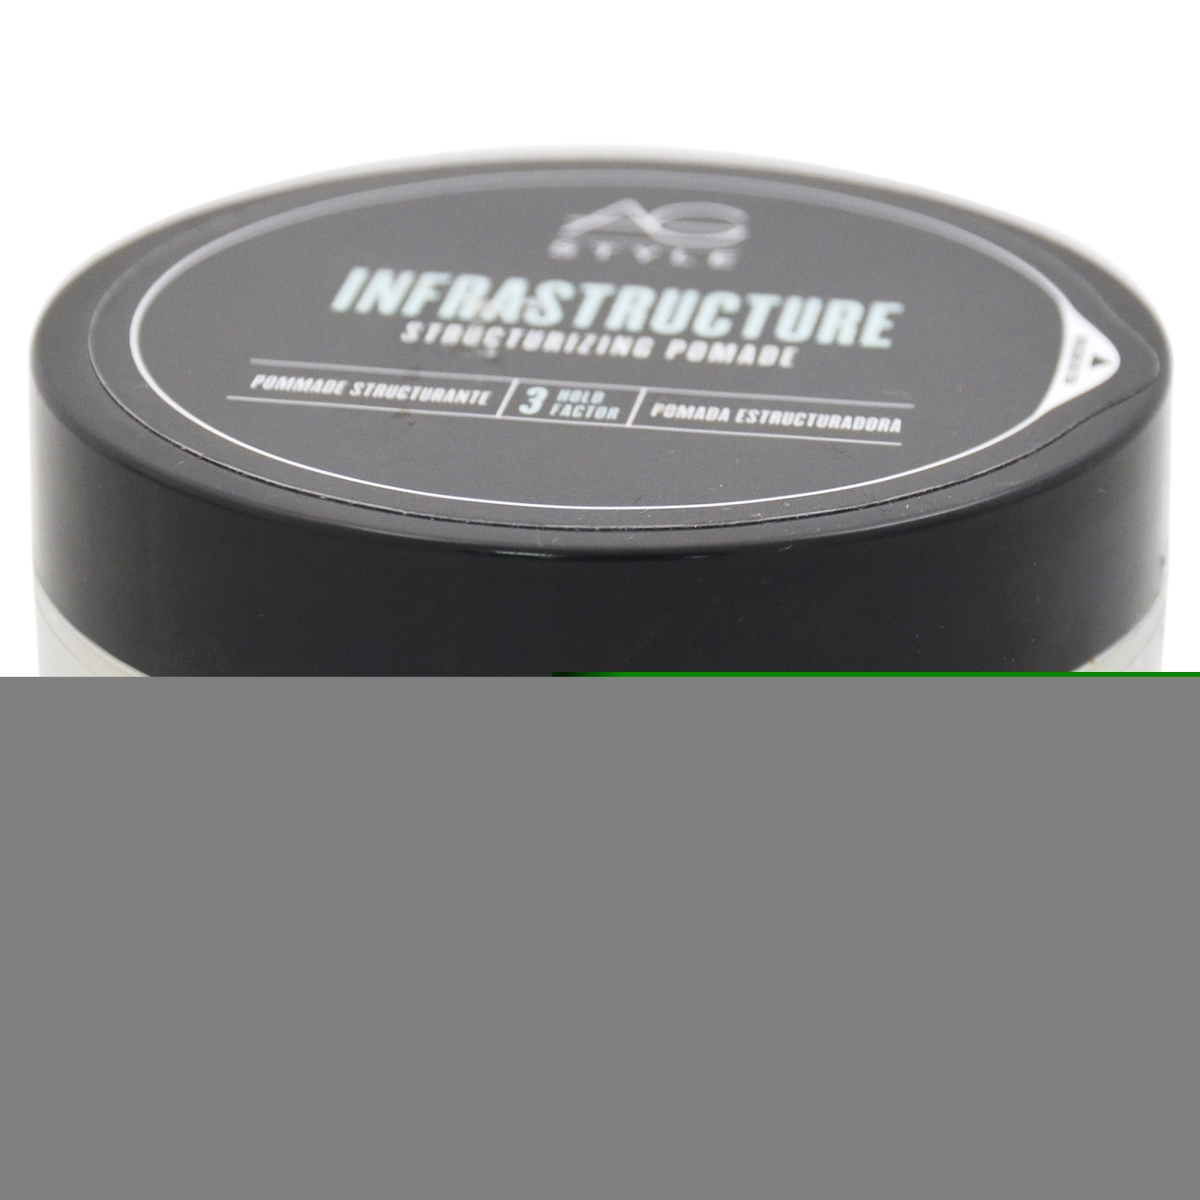 AG Hair Cosmetics U-HC-10704 Infrastructure Structurizing Pomade for Unisex - 2.5 oz